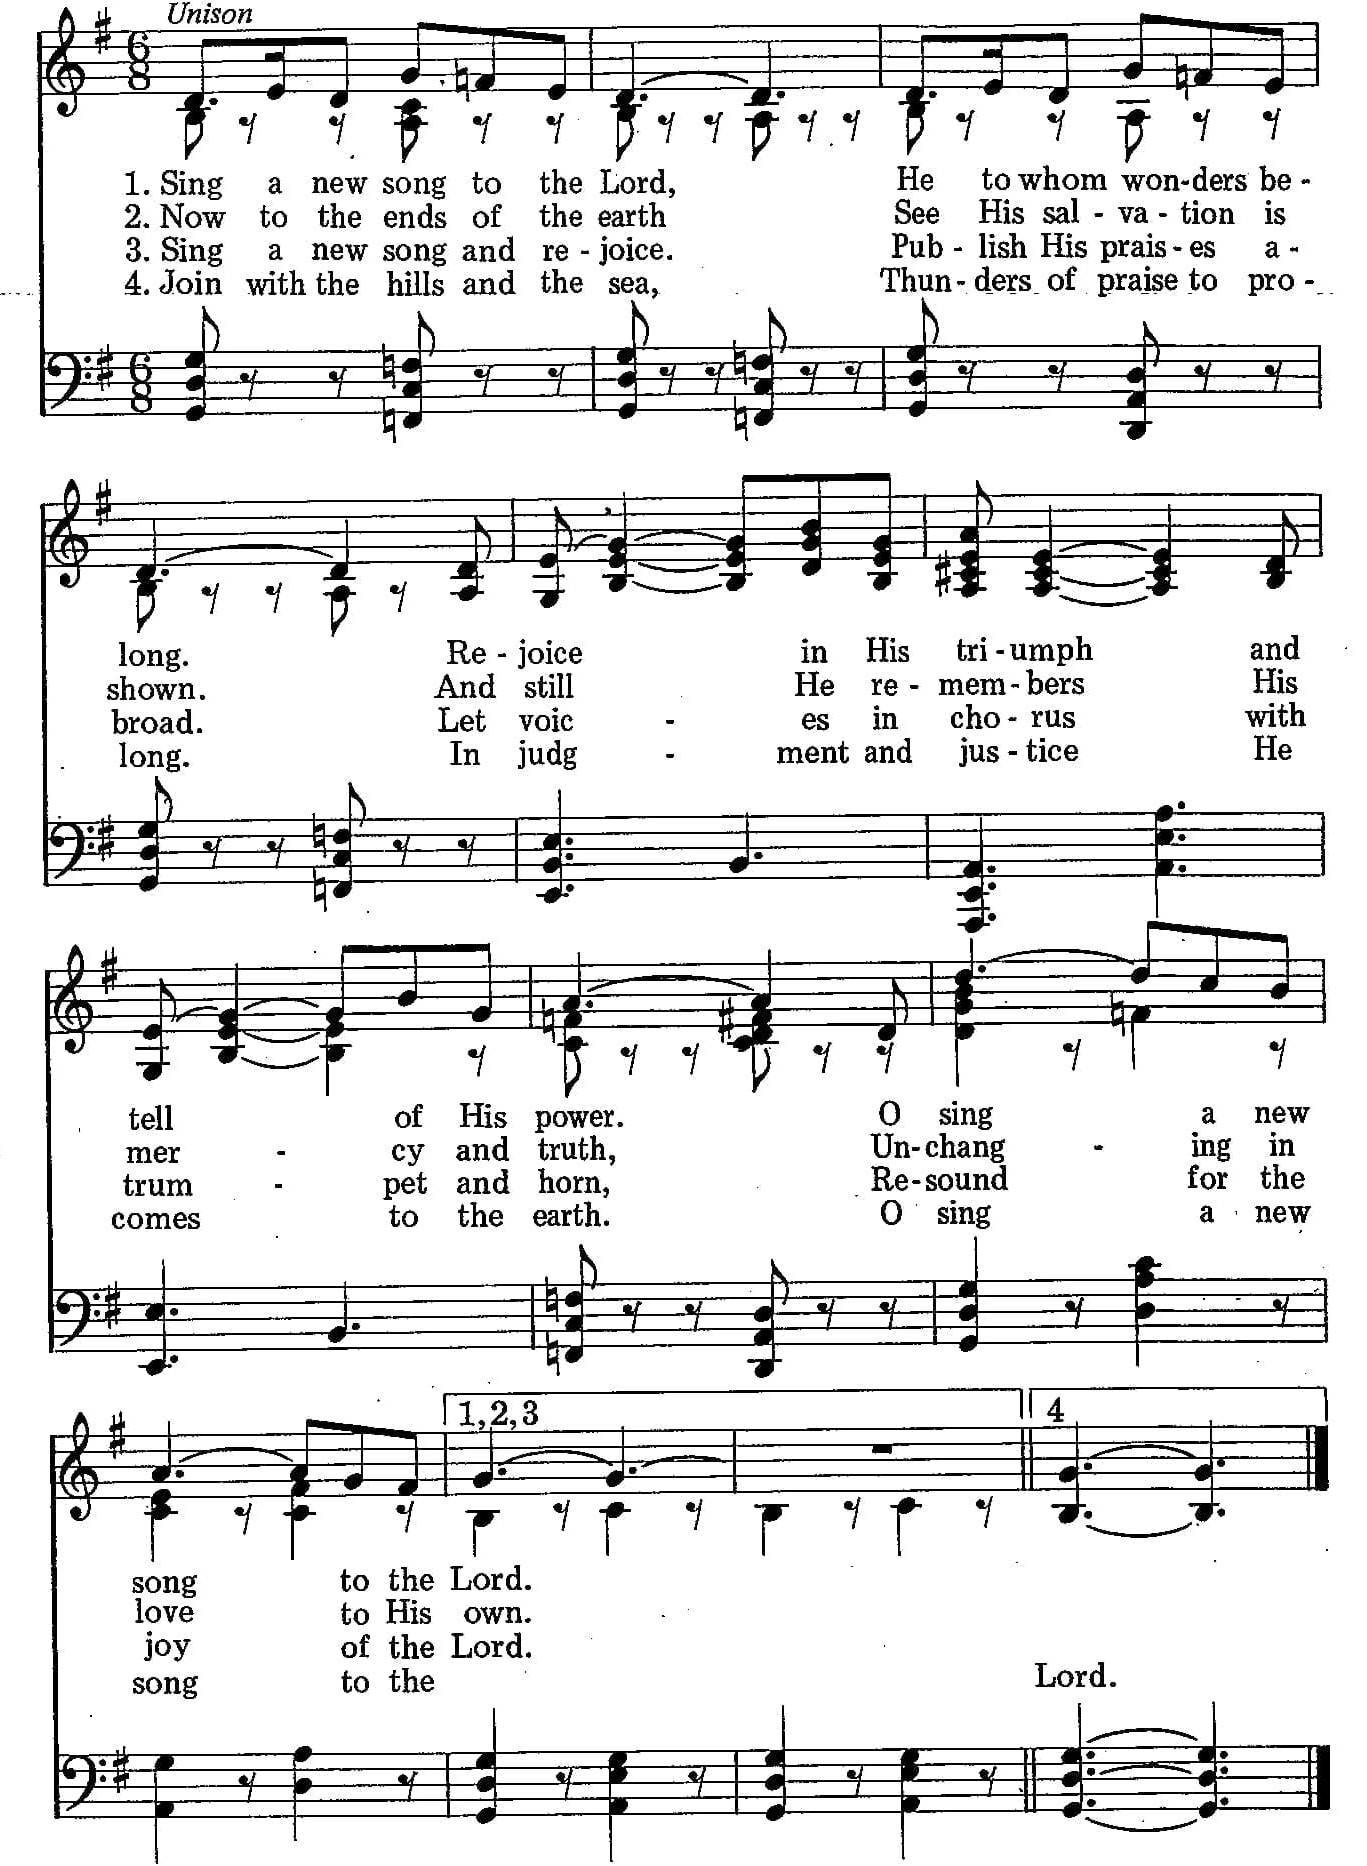 033 – Sing a New Song to the Lord sheet music